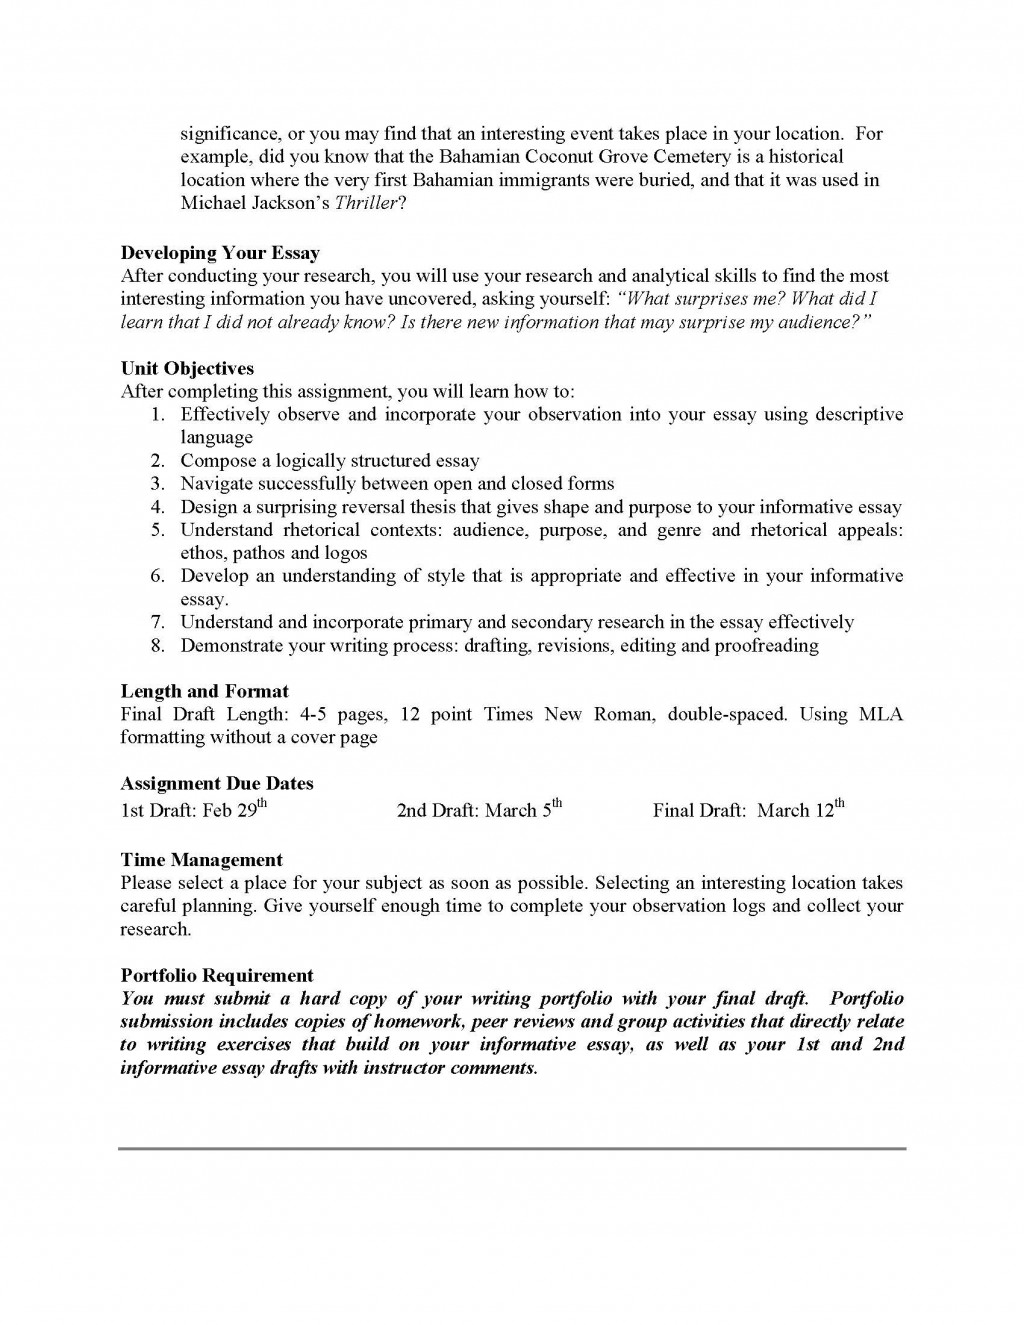 014 Informative Essay Unit Assignment Page 2 Dreaded Rubric Middle School Graphic Organizer Large